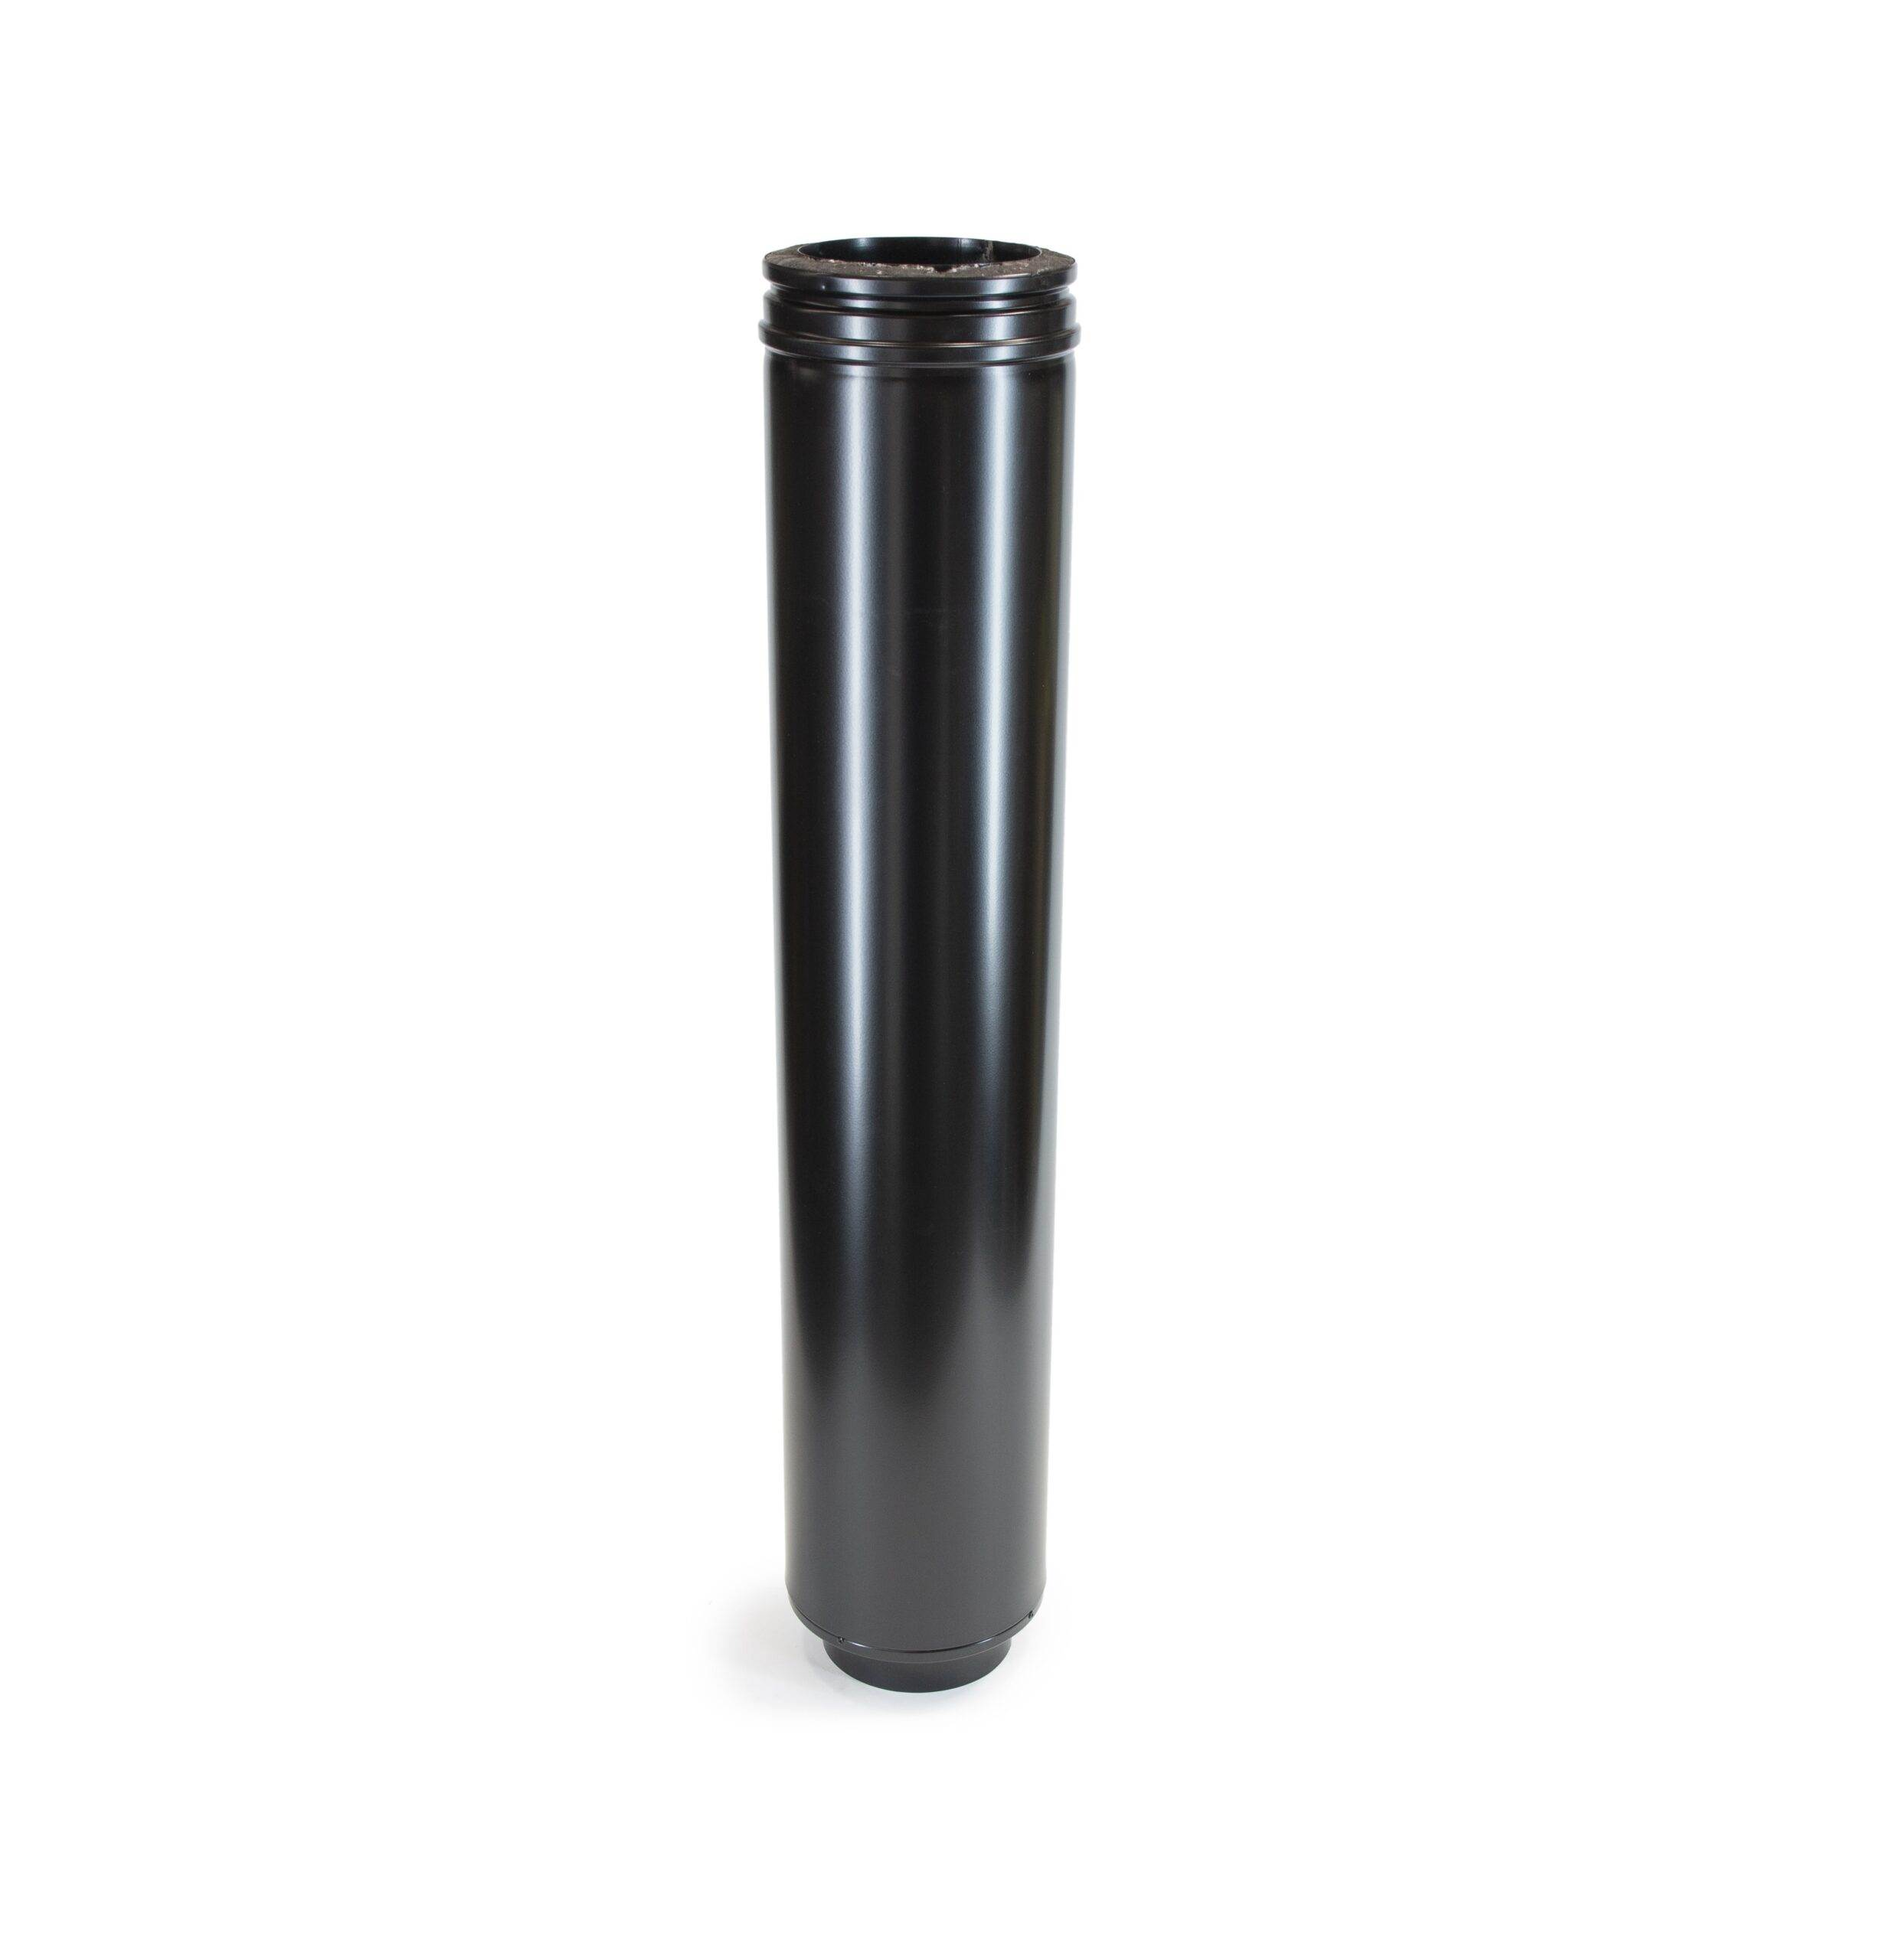 Starter Flue Pipe - Schiedel ICS Twin Wall Flue - Black Powder Coated